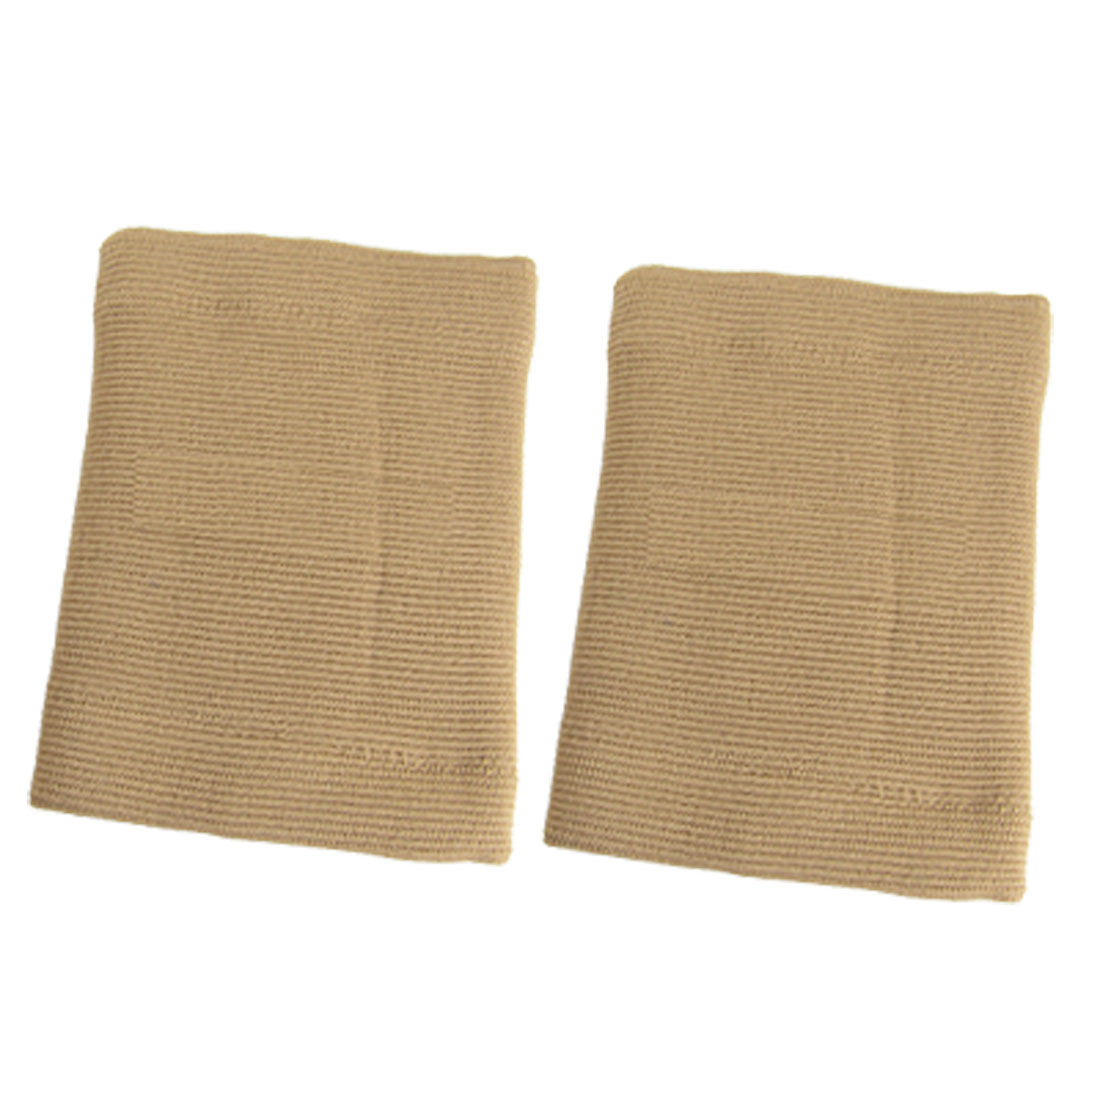 Pair Stretchy Badminton Sports Wrist Protector Support